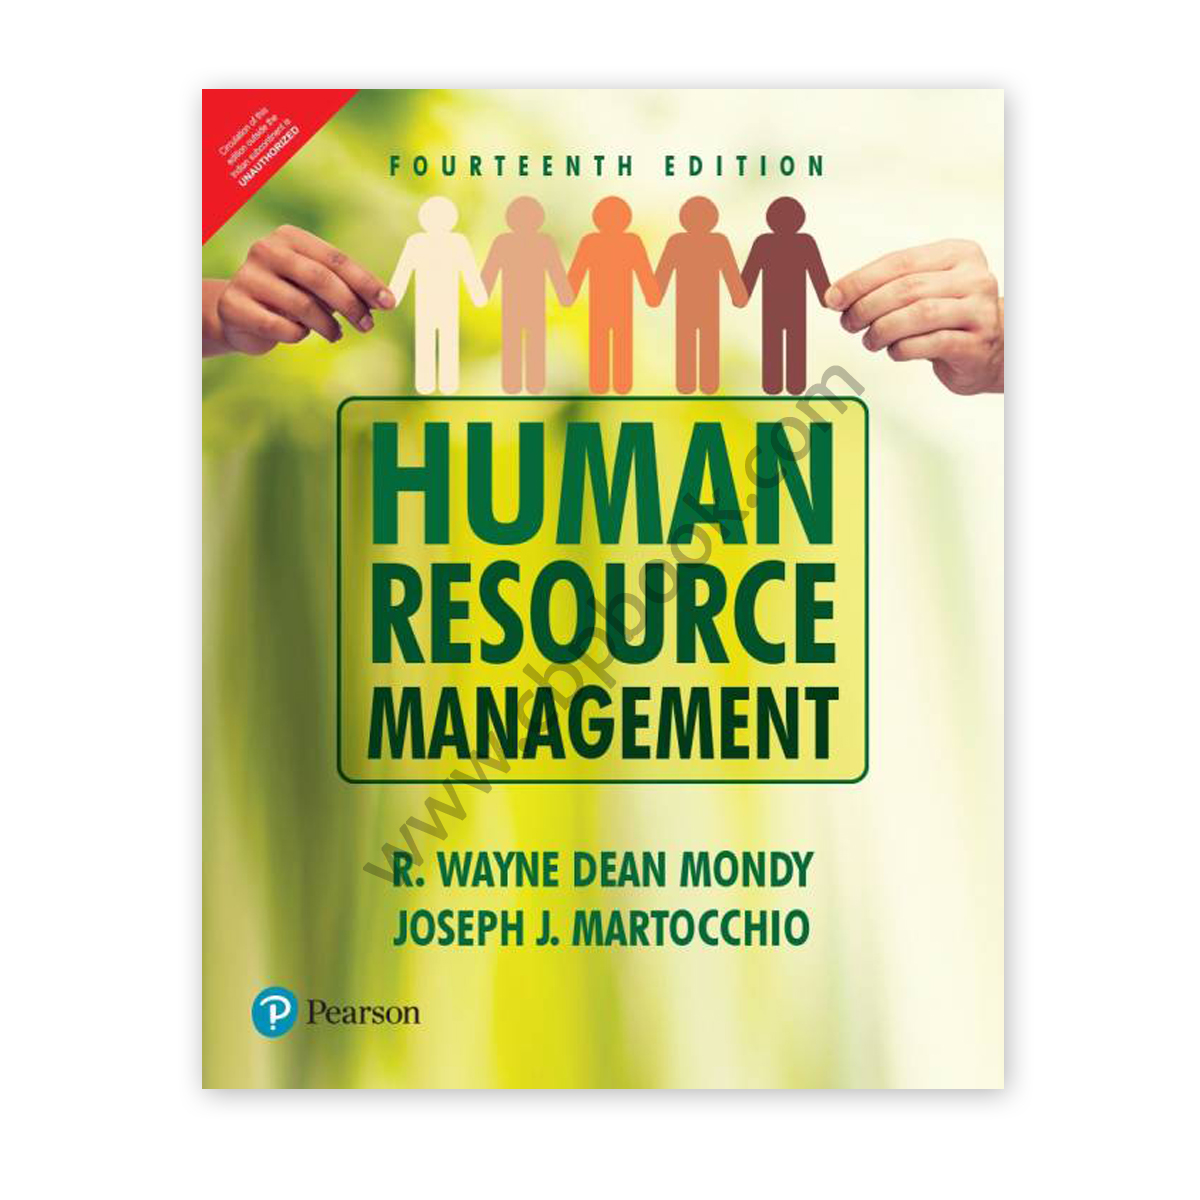 human resource management 14th edition by mondy martocchio - pearson